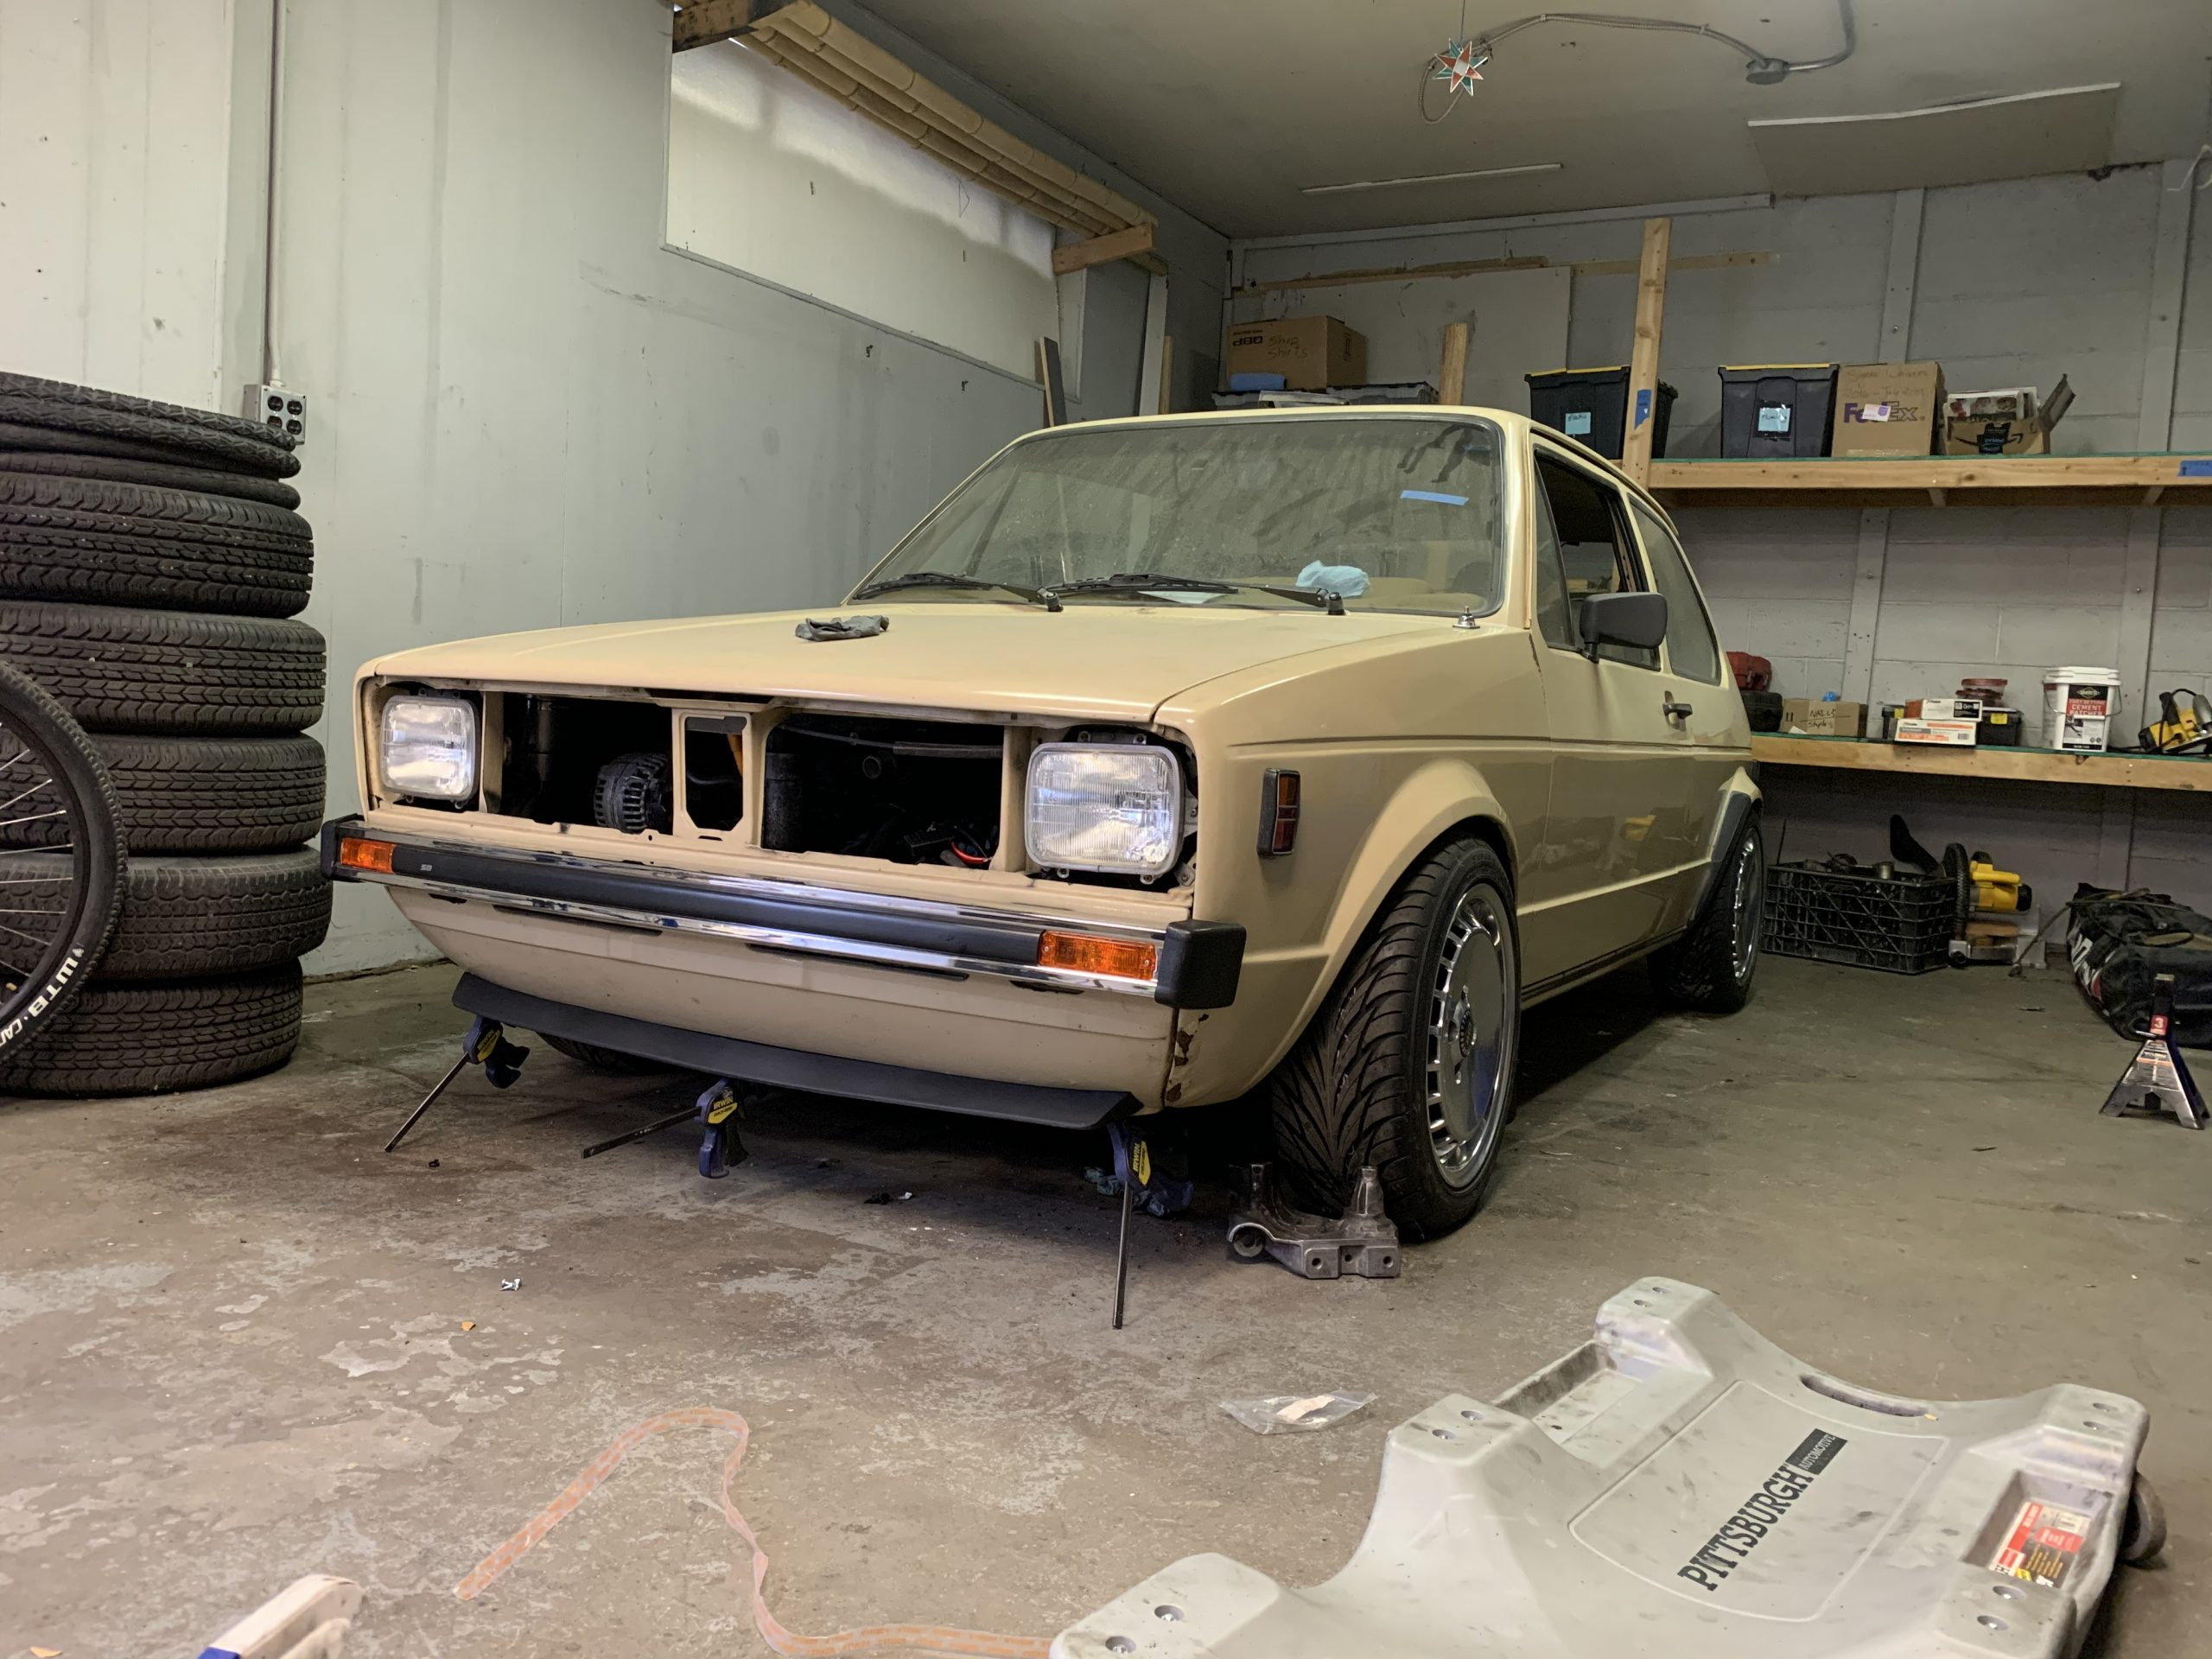 1980 VW Rabbit TDI swap after splitter Nov 09, 11 39 36 AM